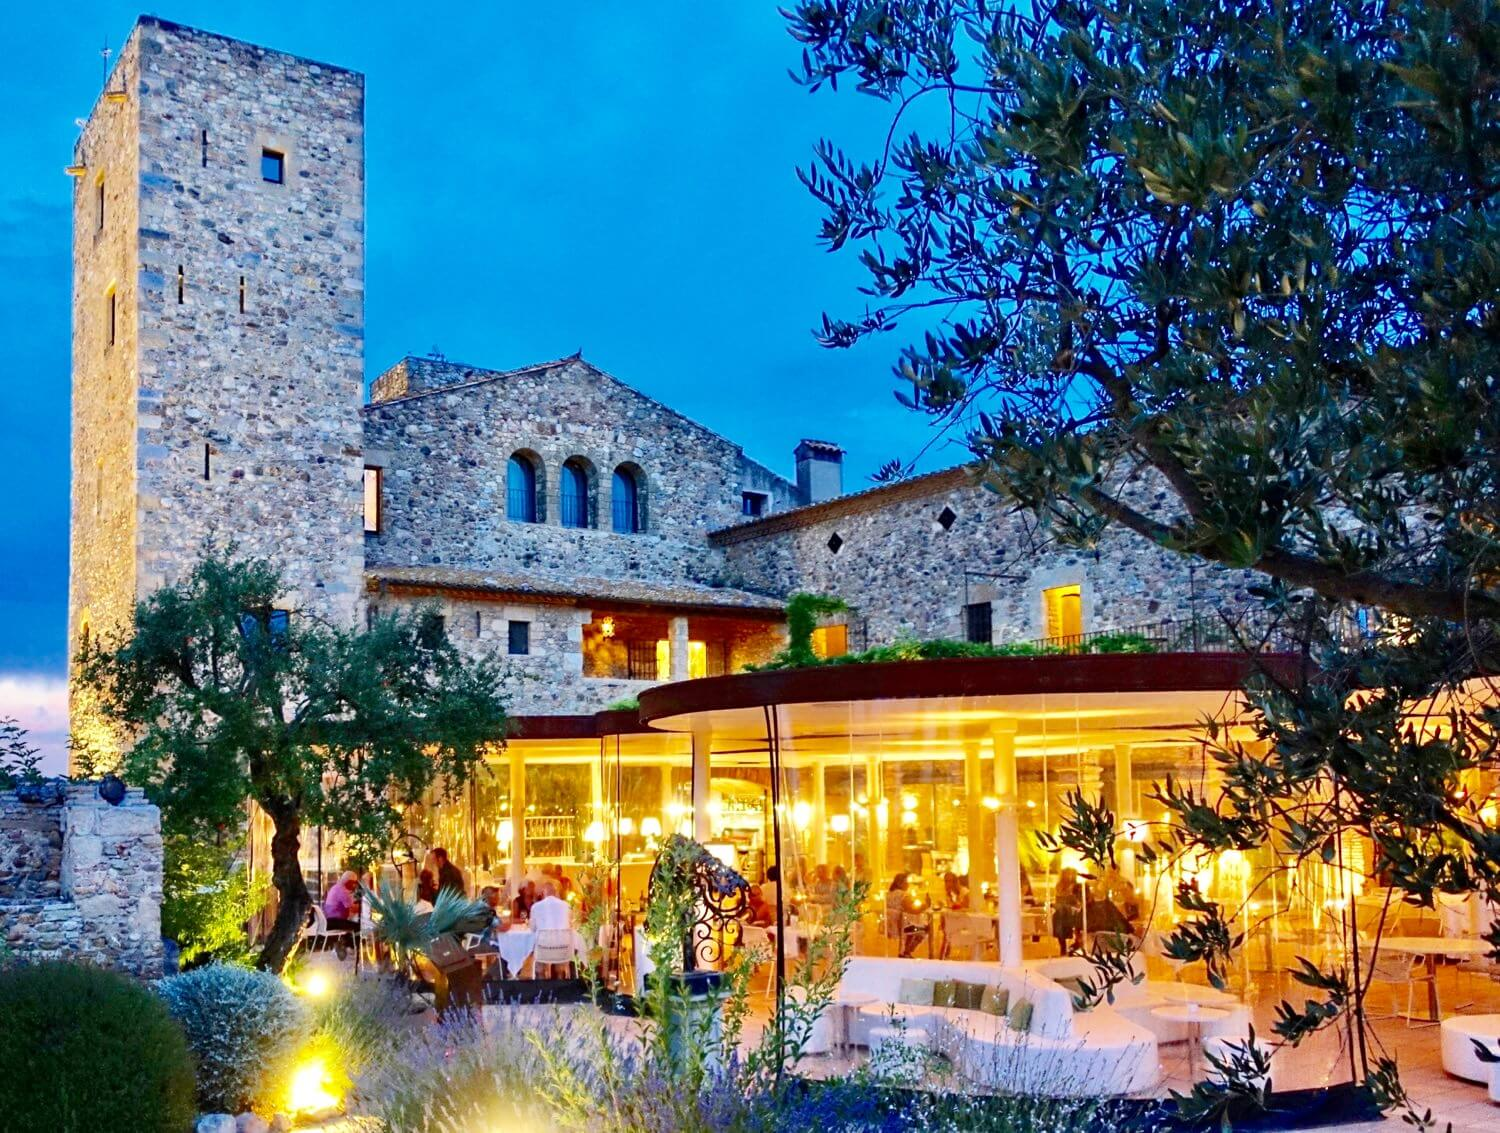 Castell d'Emporda restaurant at night